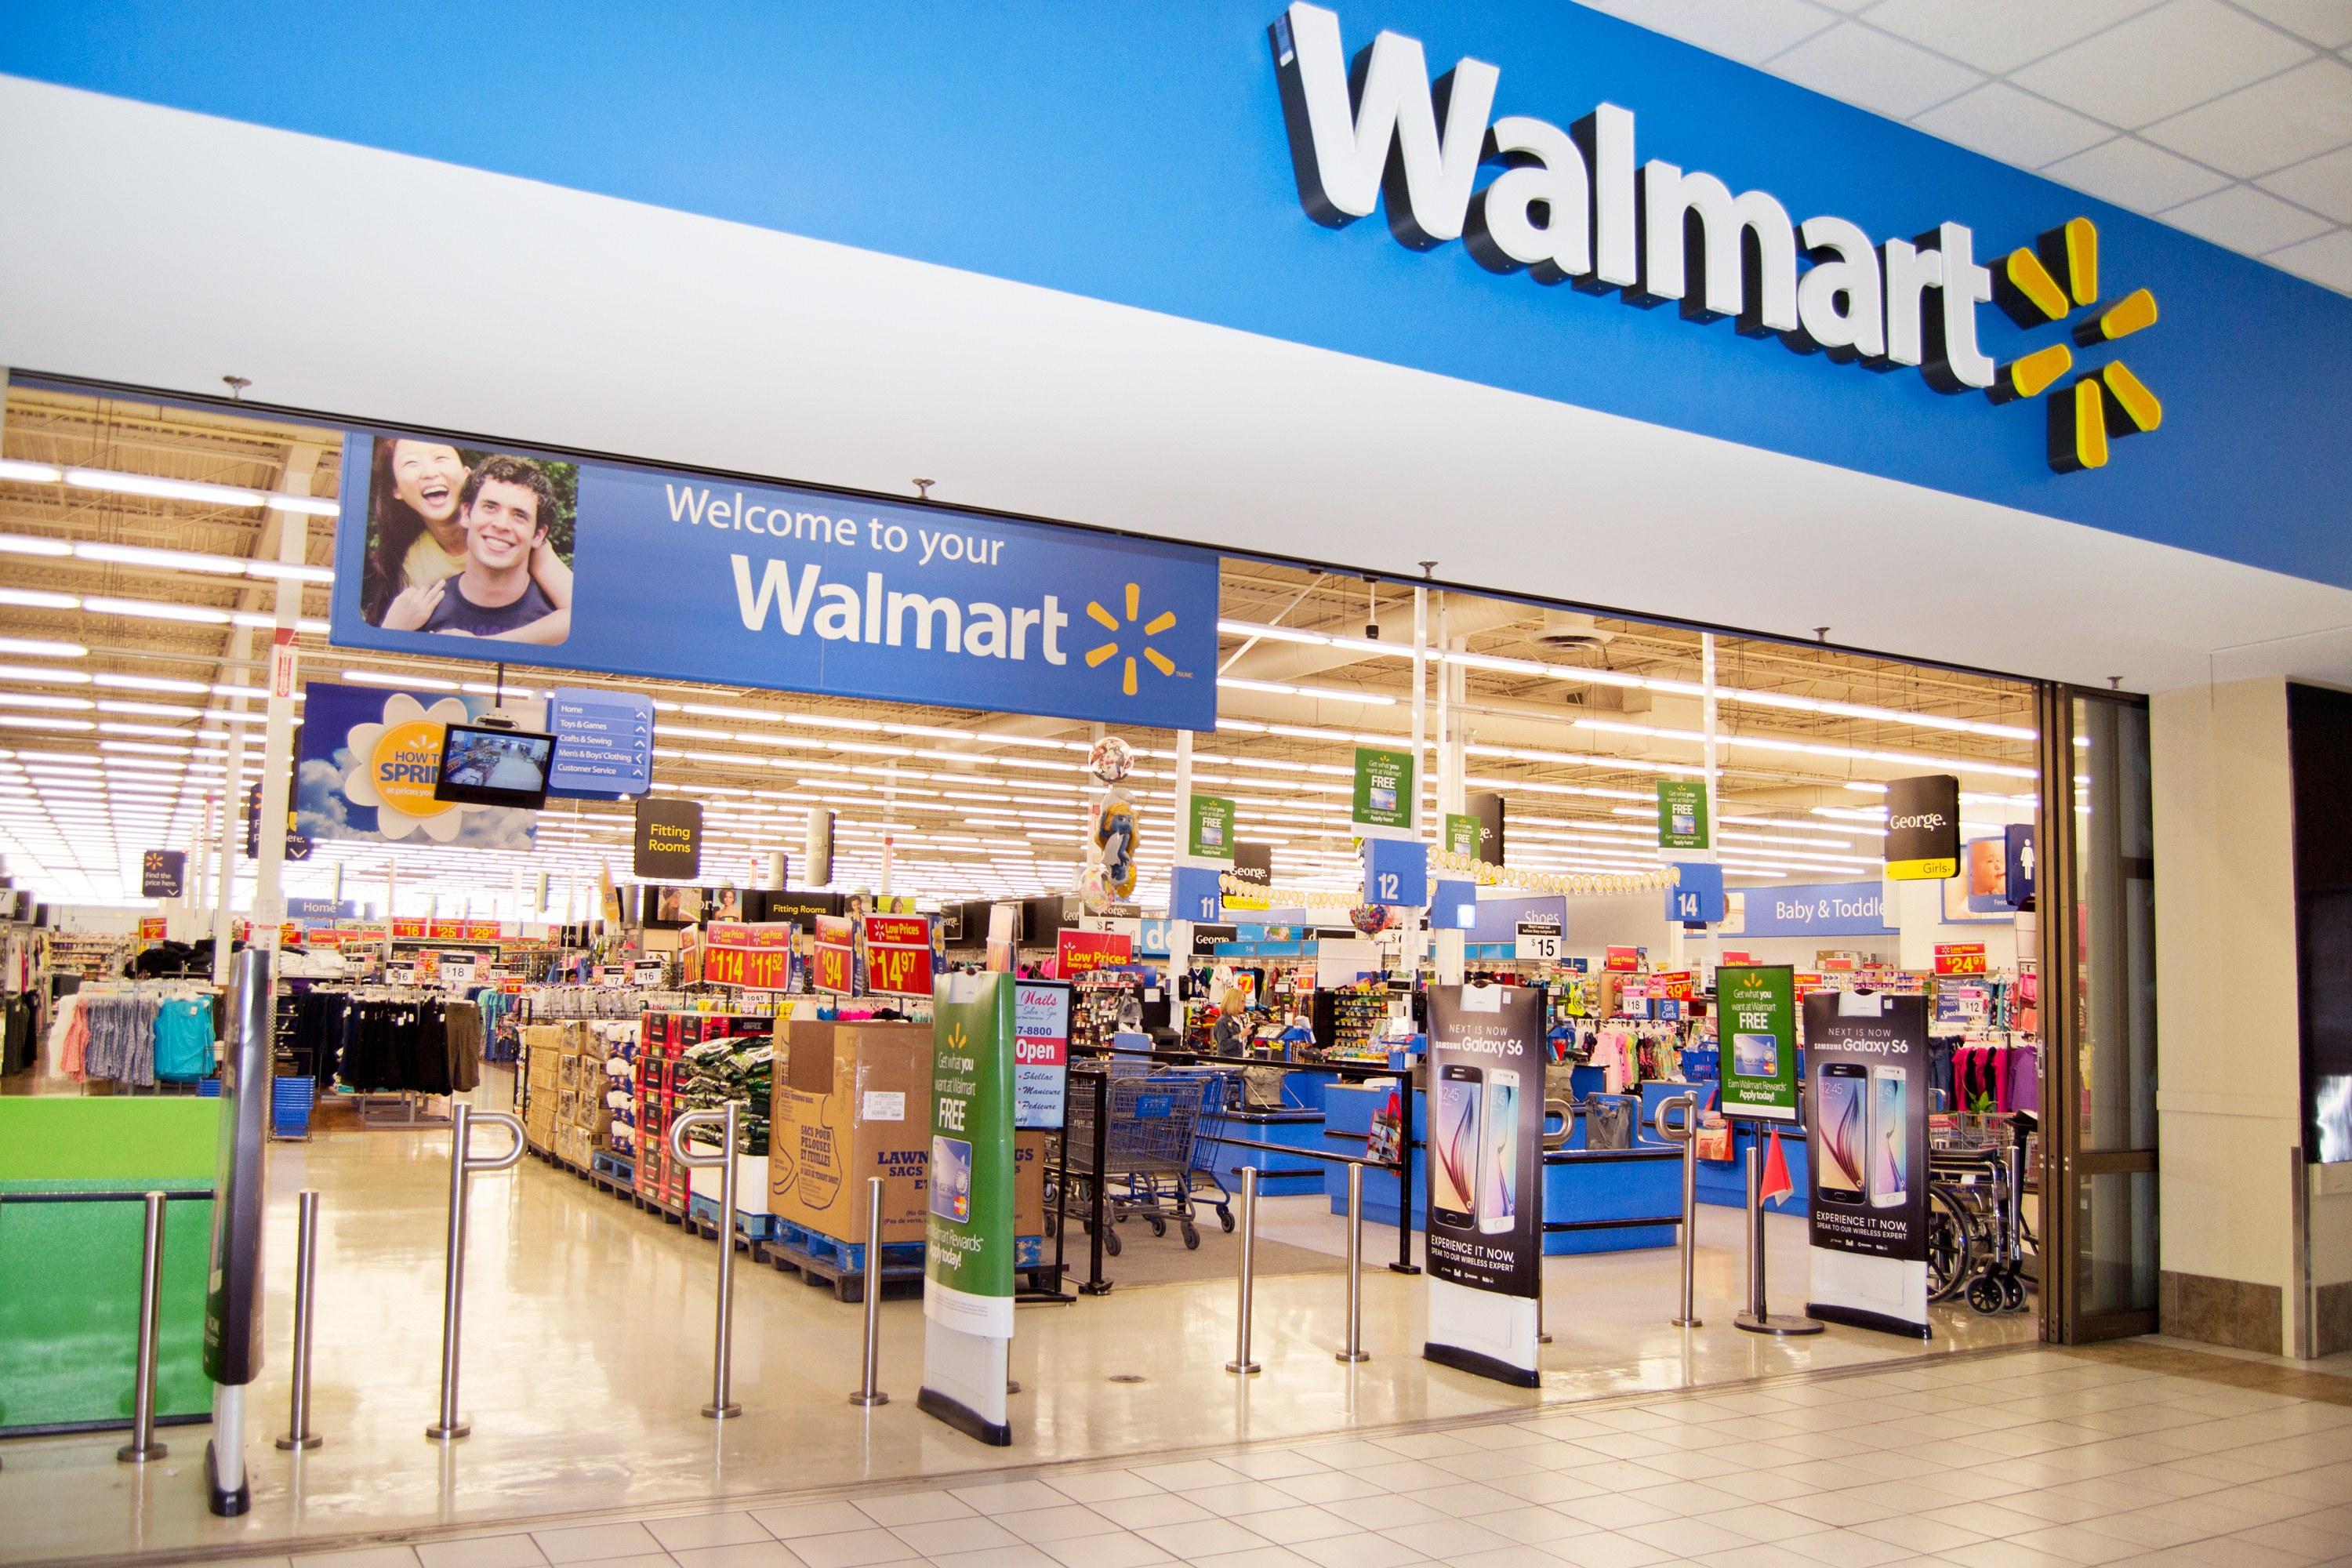 Shopping Giant 'Walmart' Files Another Blockchain Patent